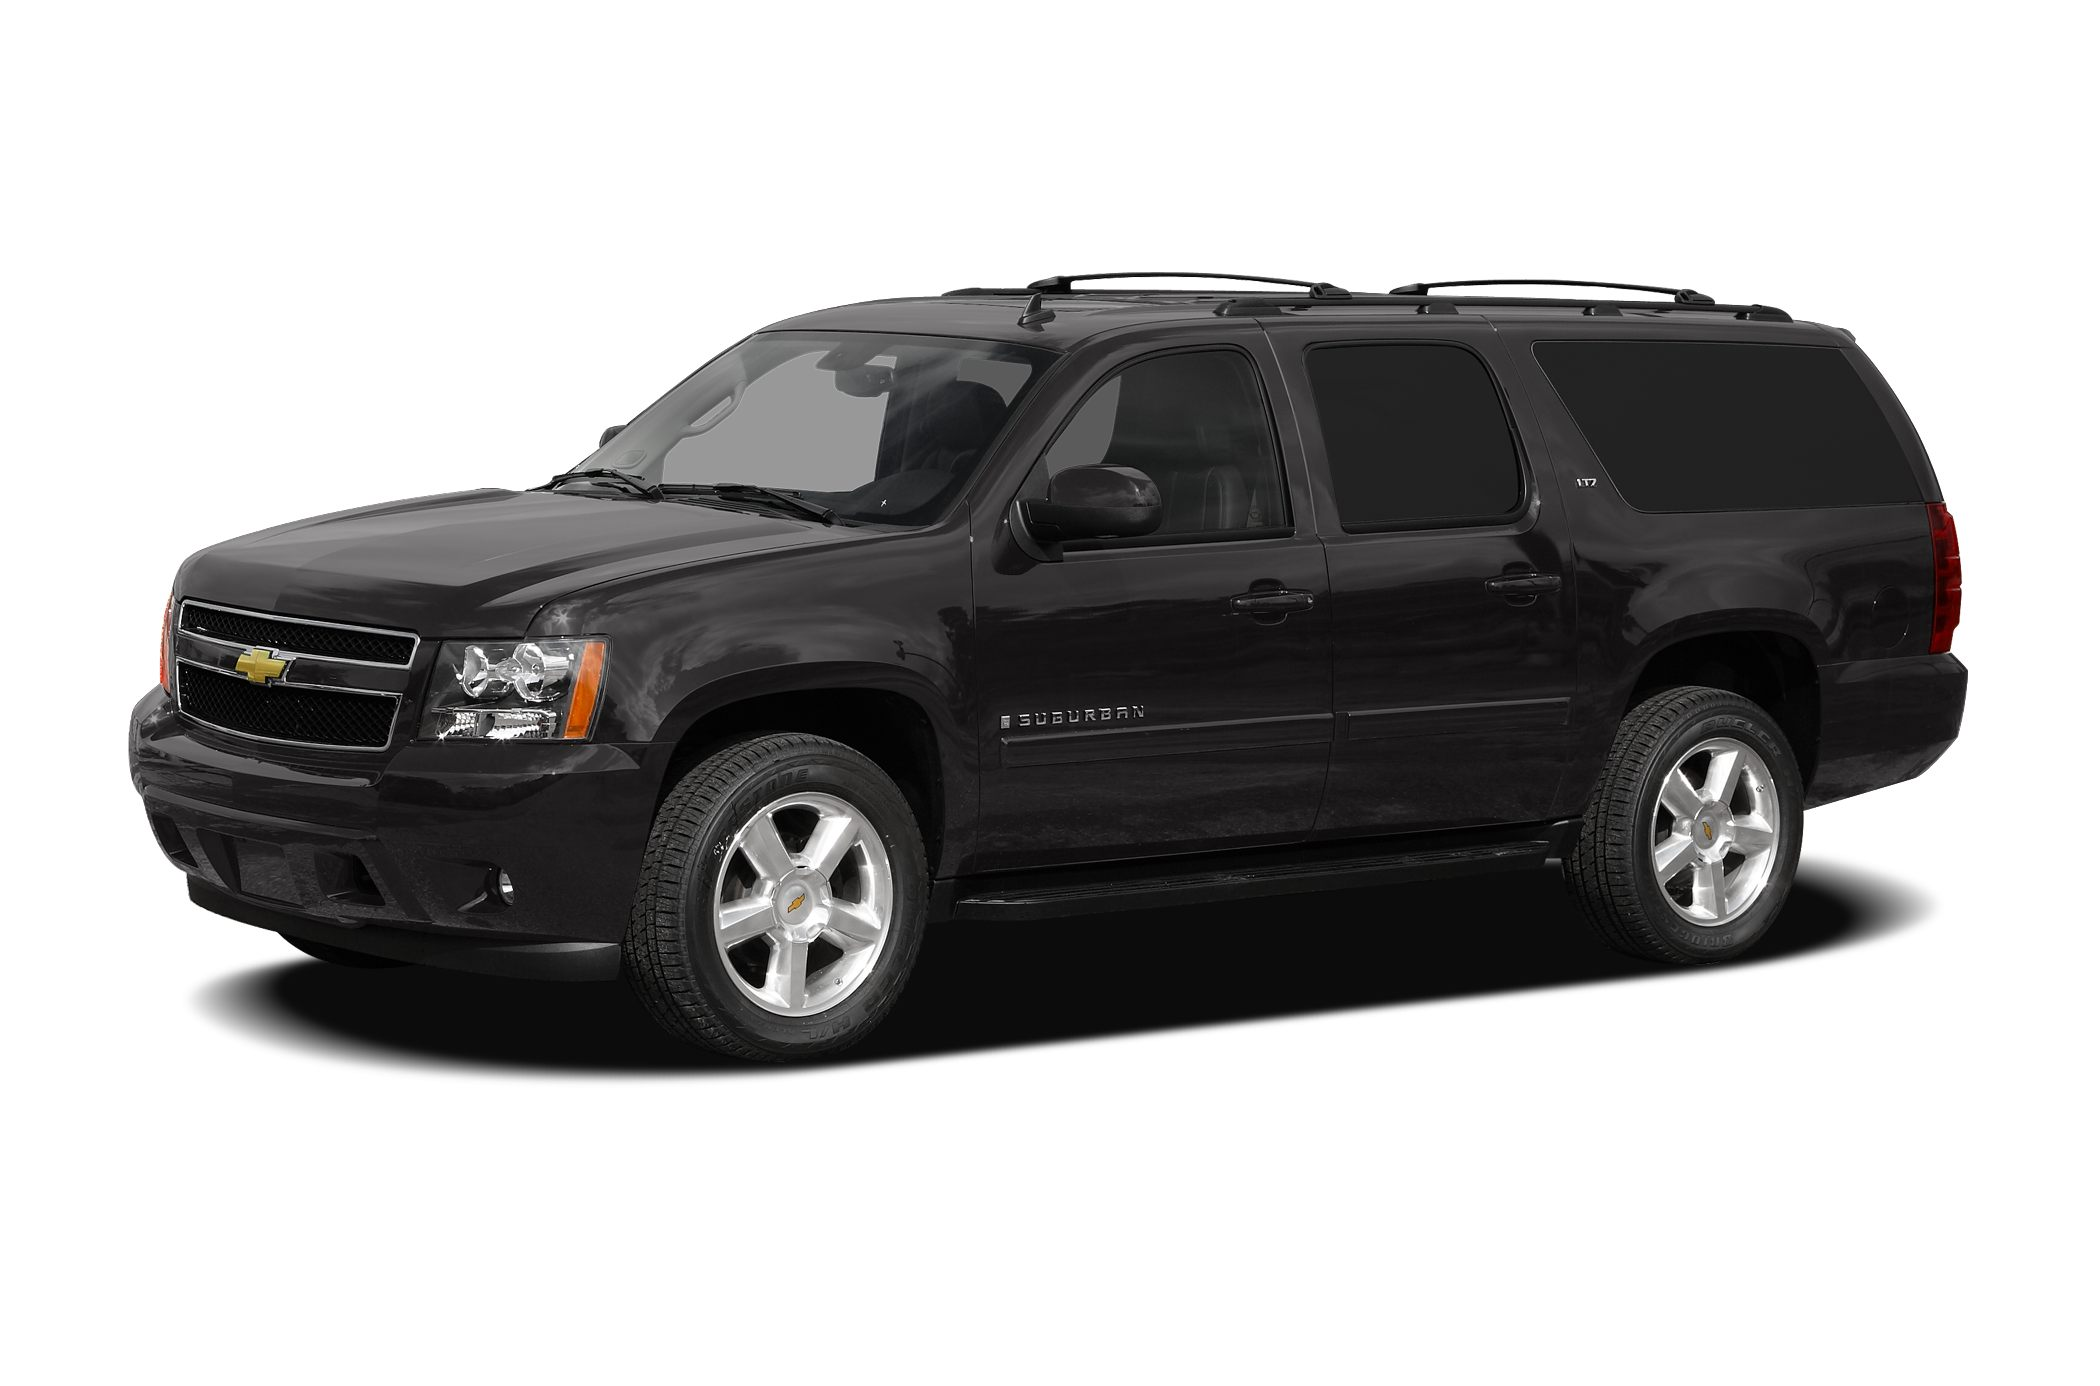 2007 Chevrolet Suburban 1500 LS SUV for sale in Monroe for $17,781 with 126,398 miles.